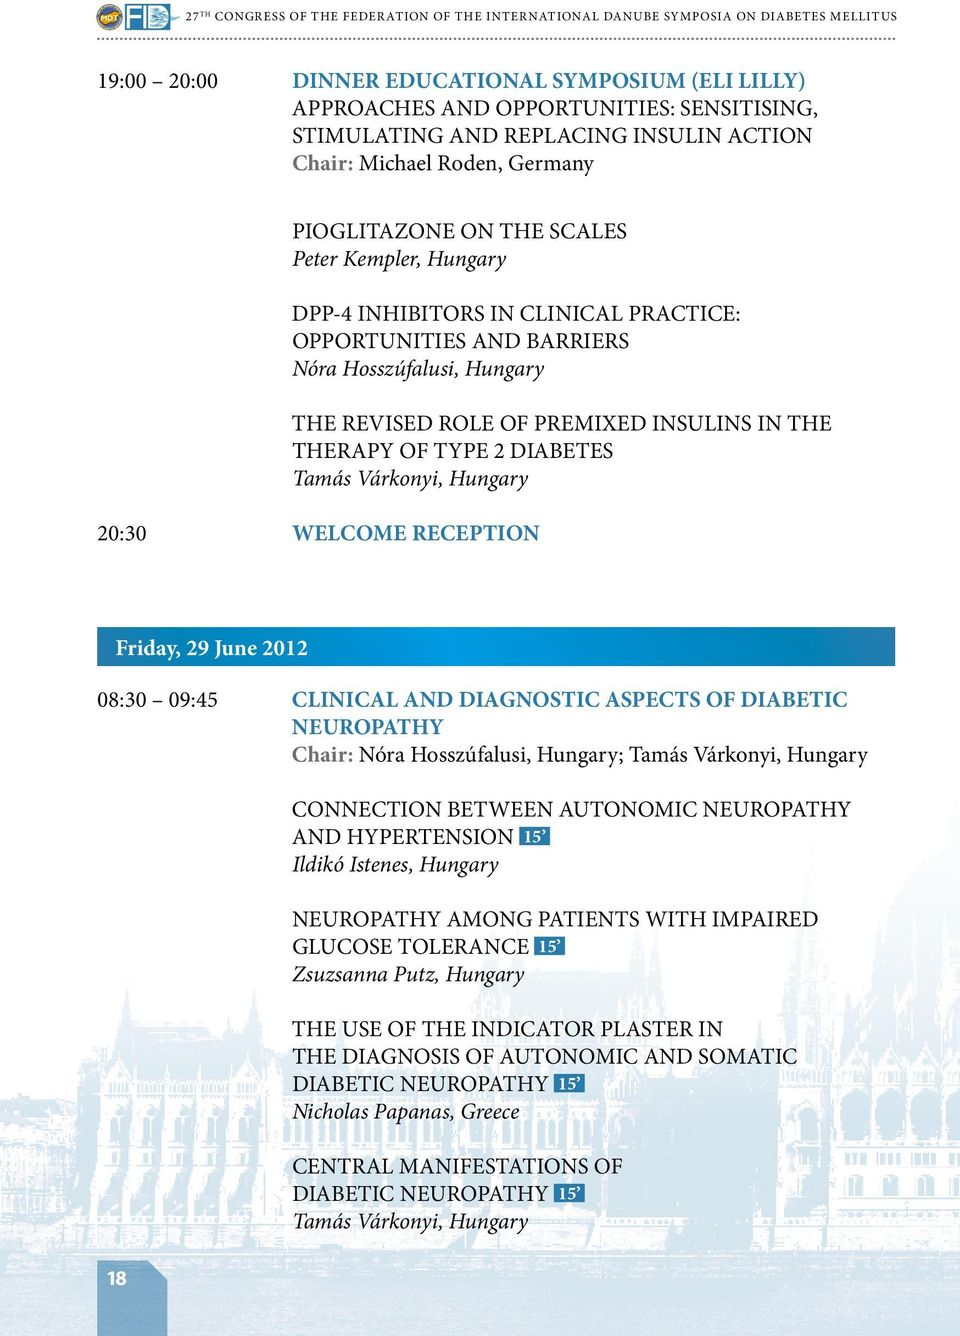 Hungary the REVISED ROLE OF PREMIXED INSULINS IN THE THERAPY OF TYPE 2 DIABETES Tamás Várkonyi, Hungary 20:30 WELCOME RECEPTION Friday, 29 June 2012 08:30 09:45 CLINICAL AND DIAGNOSTIC ASPECTS OF